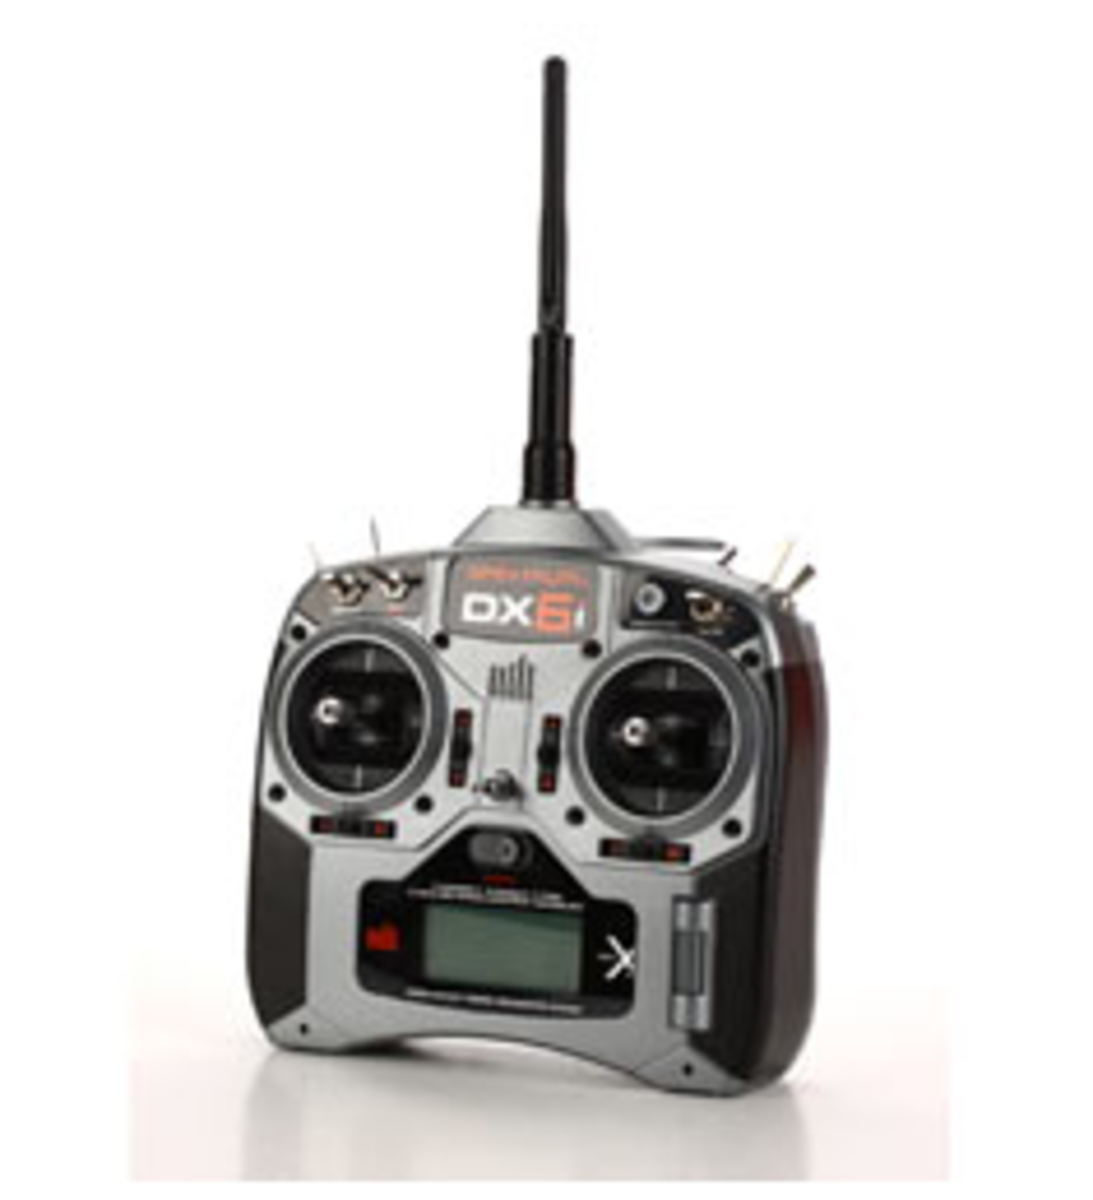 The Spektrum DX6i has easy to navigate settings.  Almost every programmable radio will have similar options.